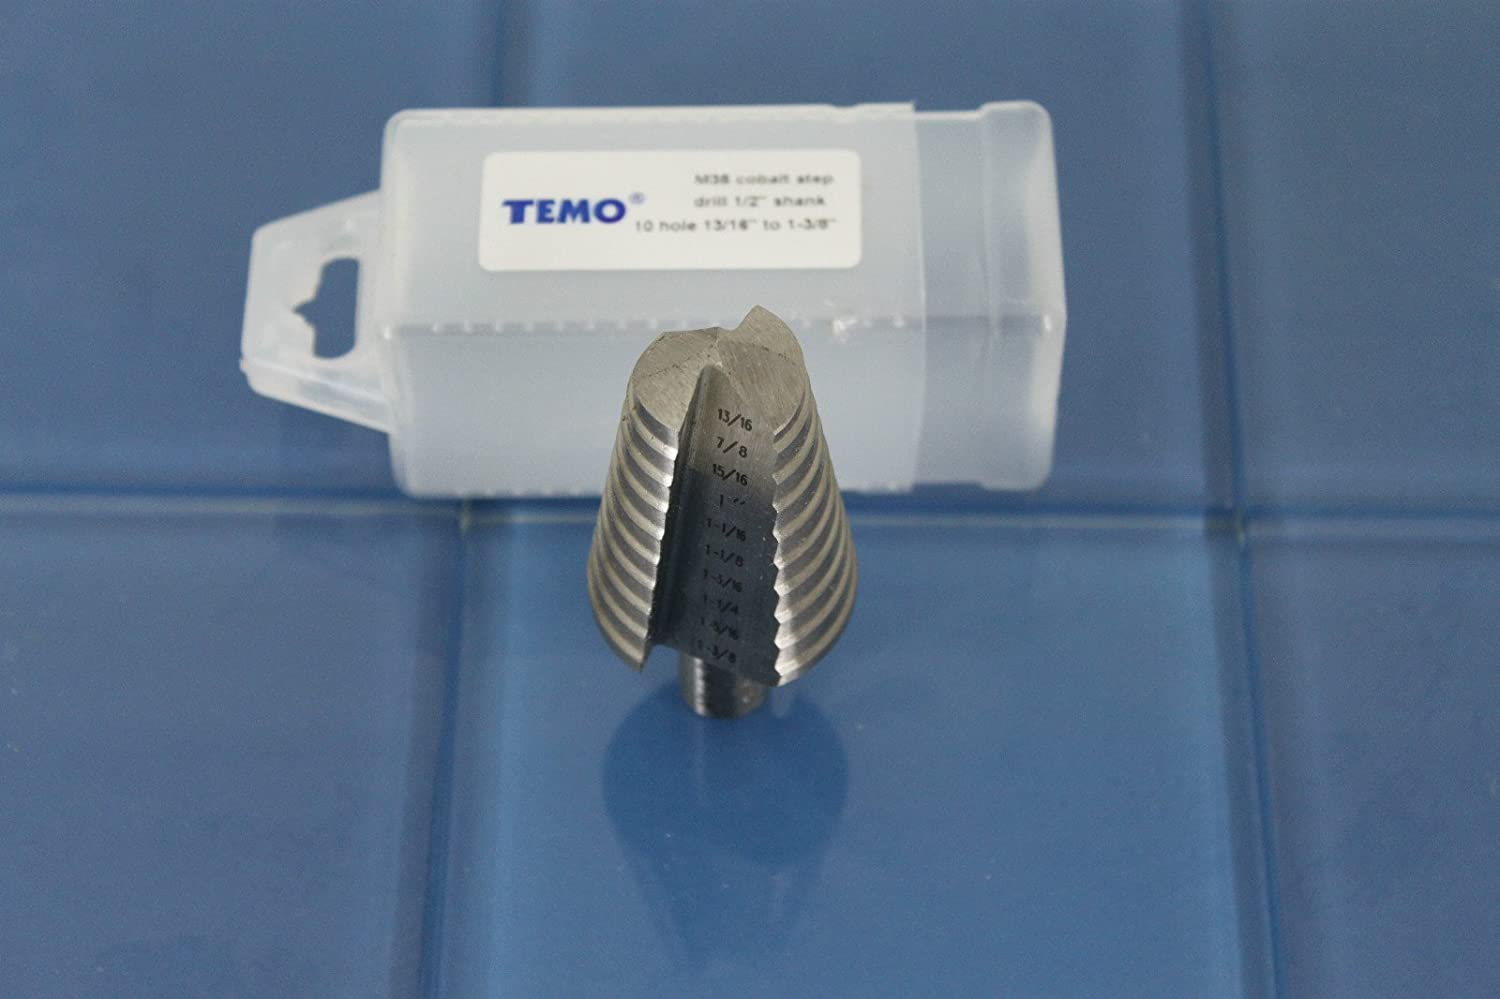 and 1-1//8 inch 28.6mm Two Size: 7//8 inch Hex Shank TEMO M35 Cobalt Step Drill Spiral Flute 22.2mm 1//4 inch 6.4mm